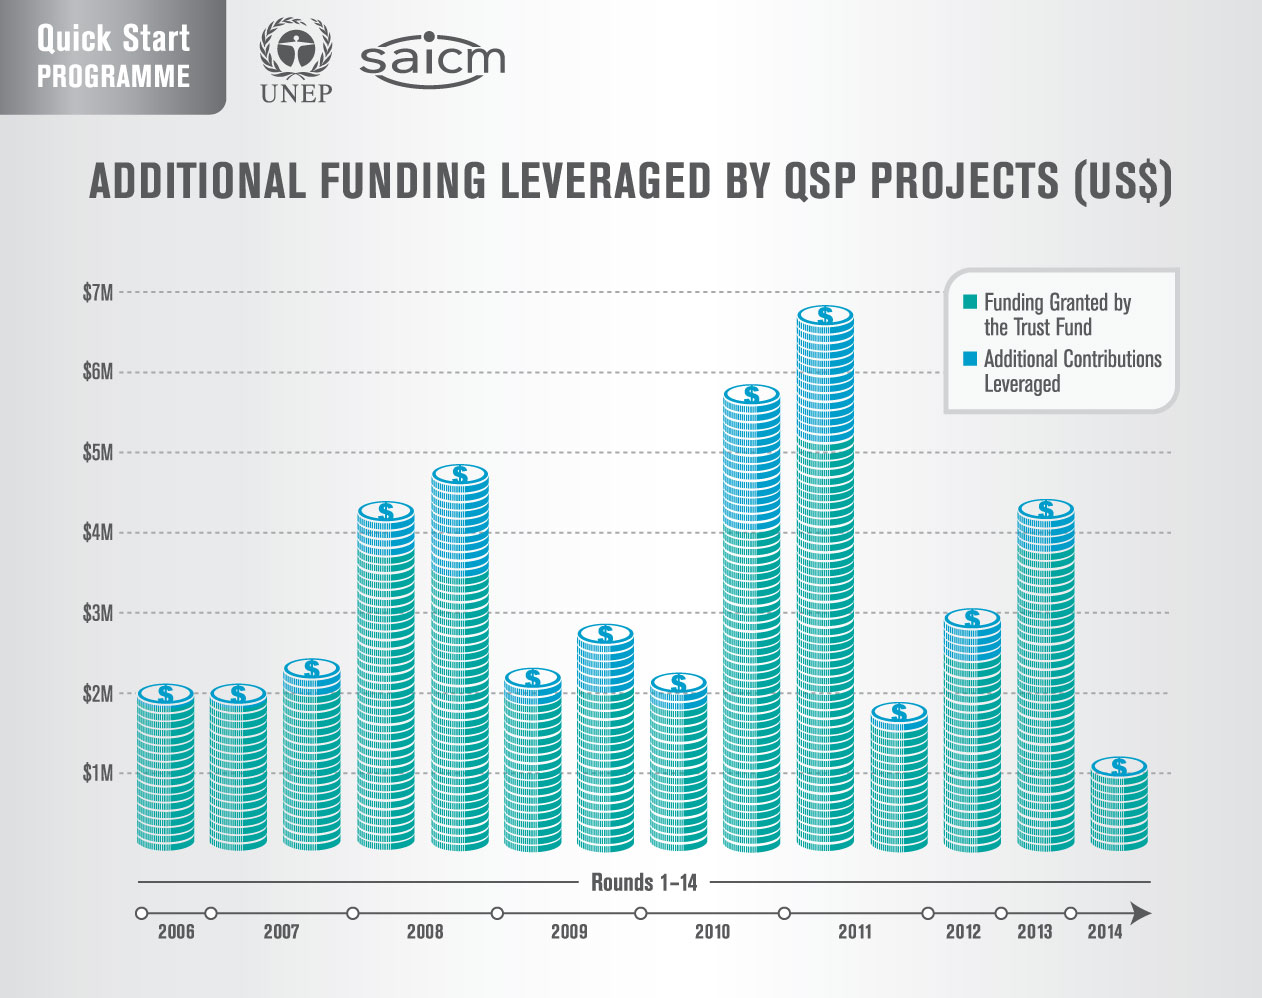 QSP projects funding